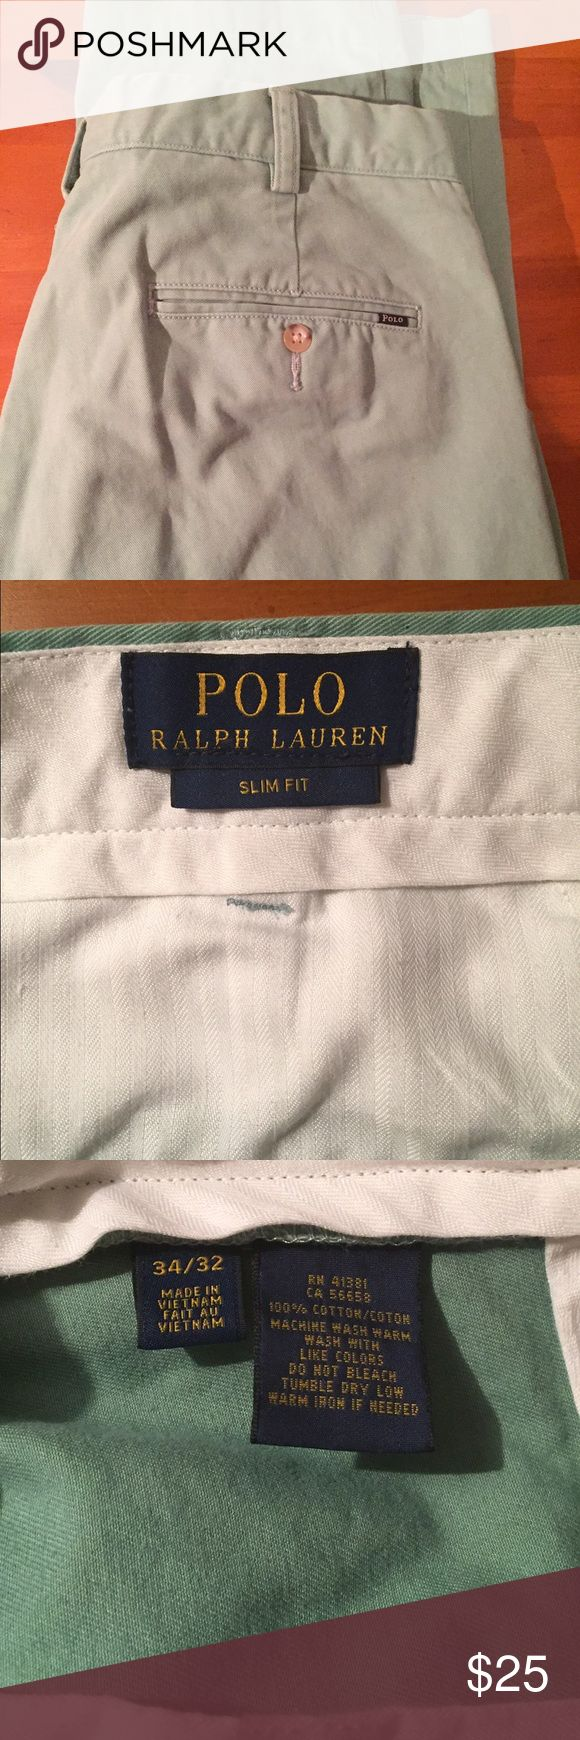 Polo Ralph Lauren Chinos Sea Foam Green 34X32 Men's Ralph Lauren Slim Fit Chinos. Willing to bundle. Like new, outgrew too quick! Comment with questions/concerns! Polo by Ralph Lauren Pants